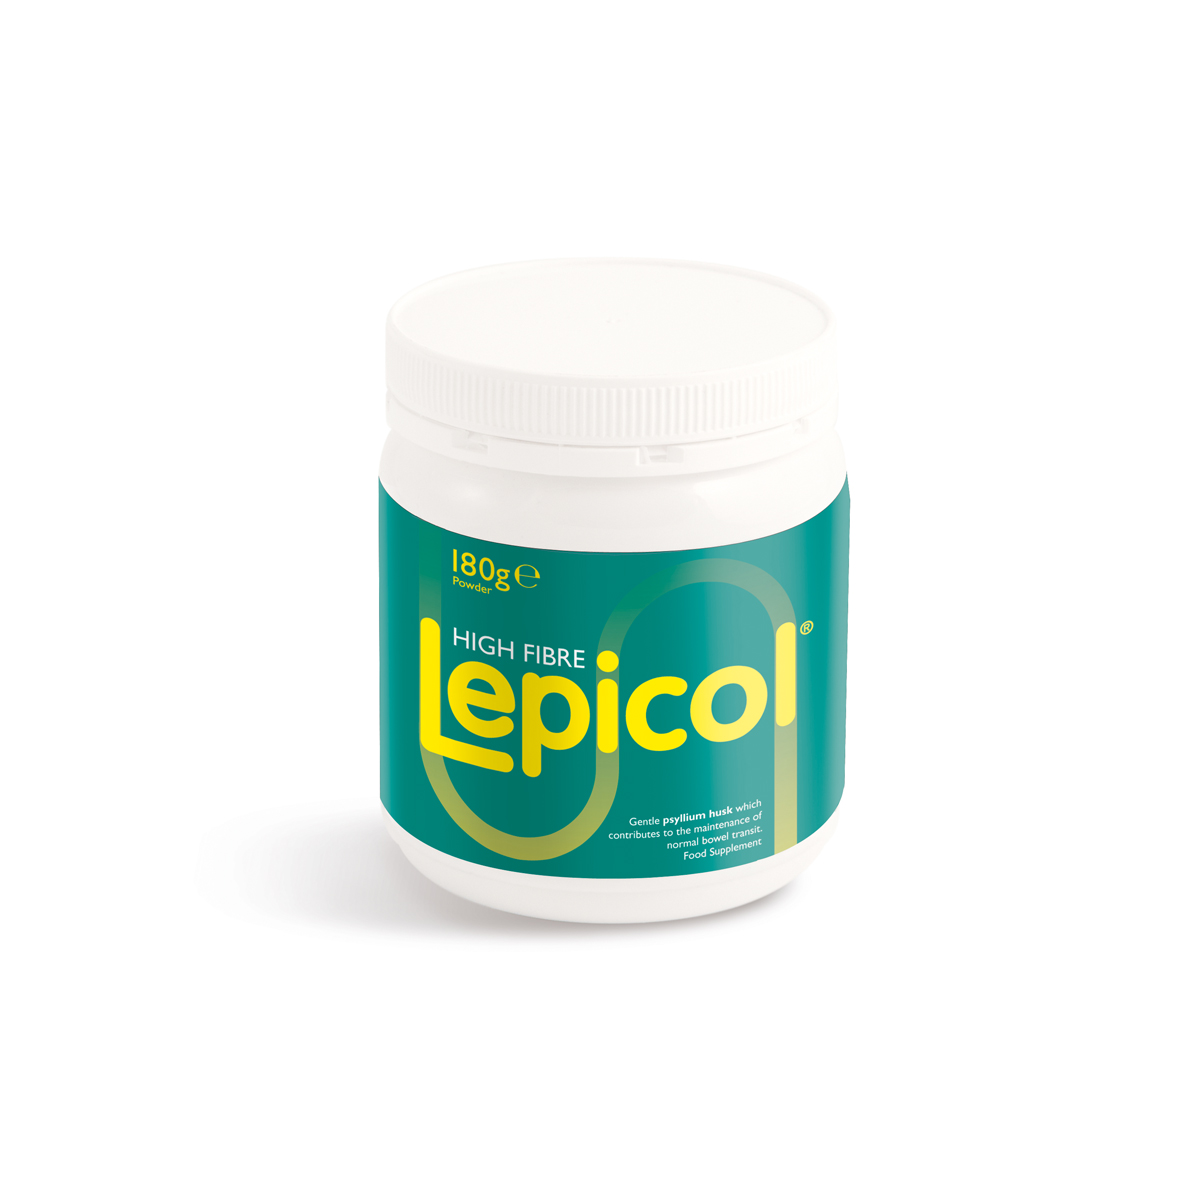 Lepicol 180g (Currently Unavailable)